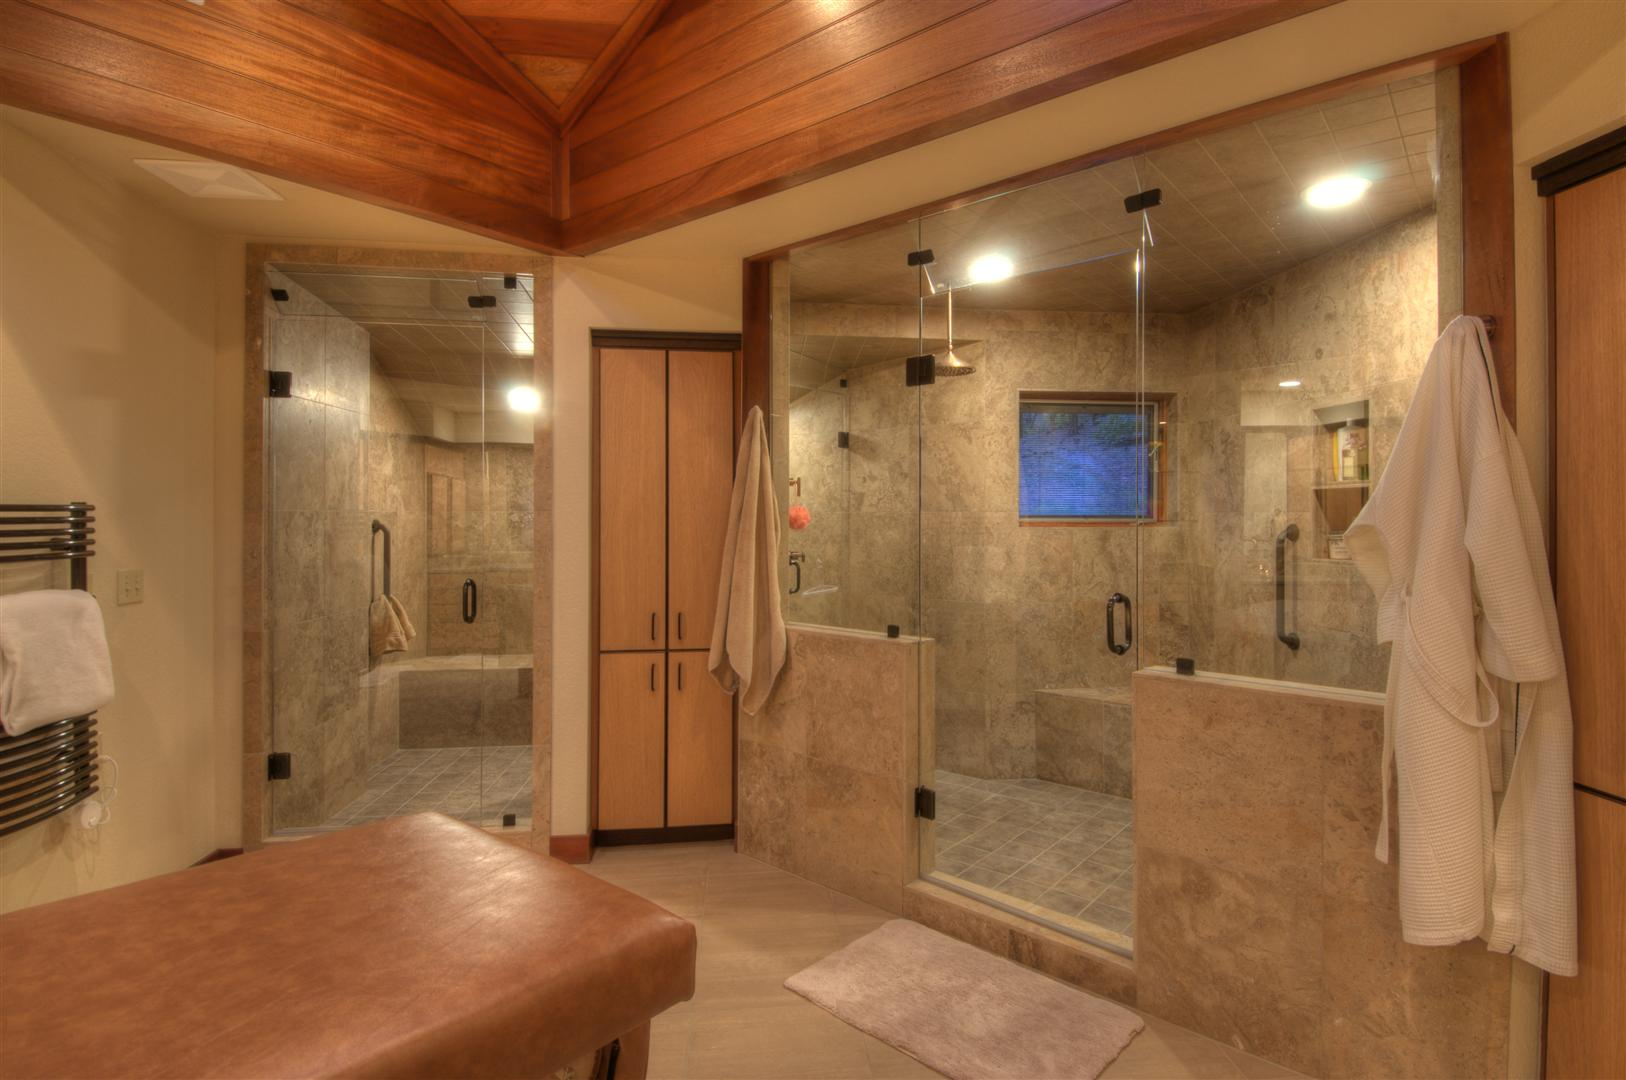 Bathroom Ideas Large Shower big bathroom designs - creditrestore